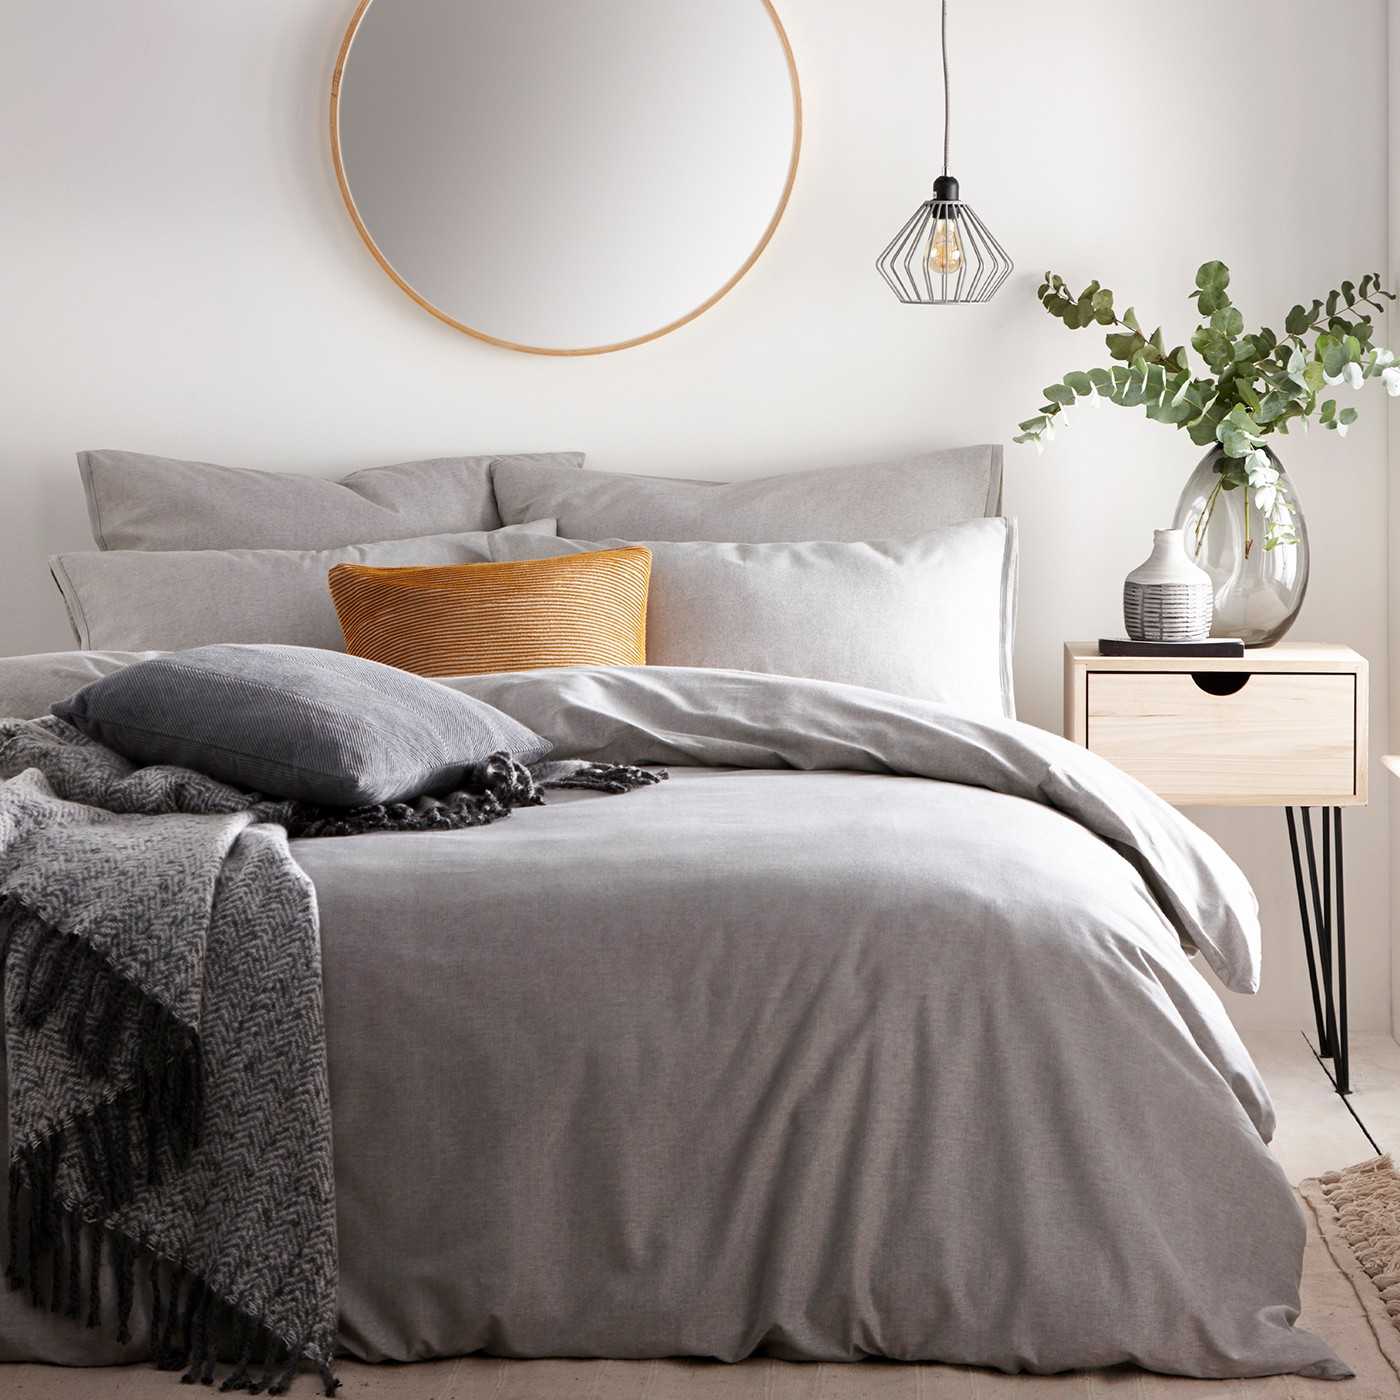 The Home Furnishings Company Claybourne Grey Duvet Cover and Matching Pillow Cases